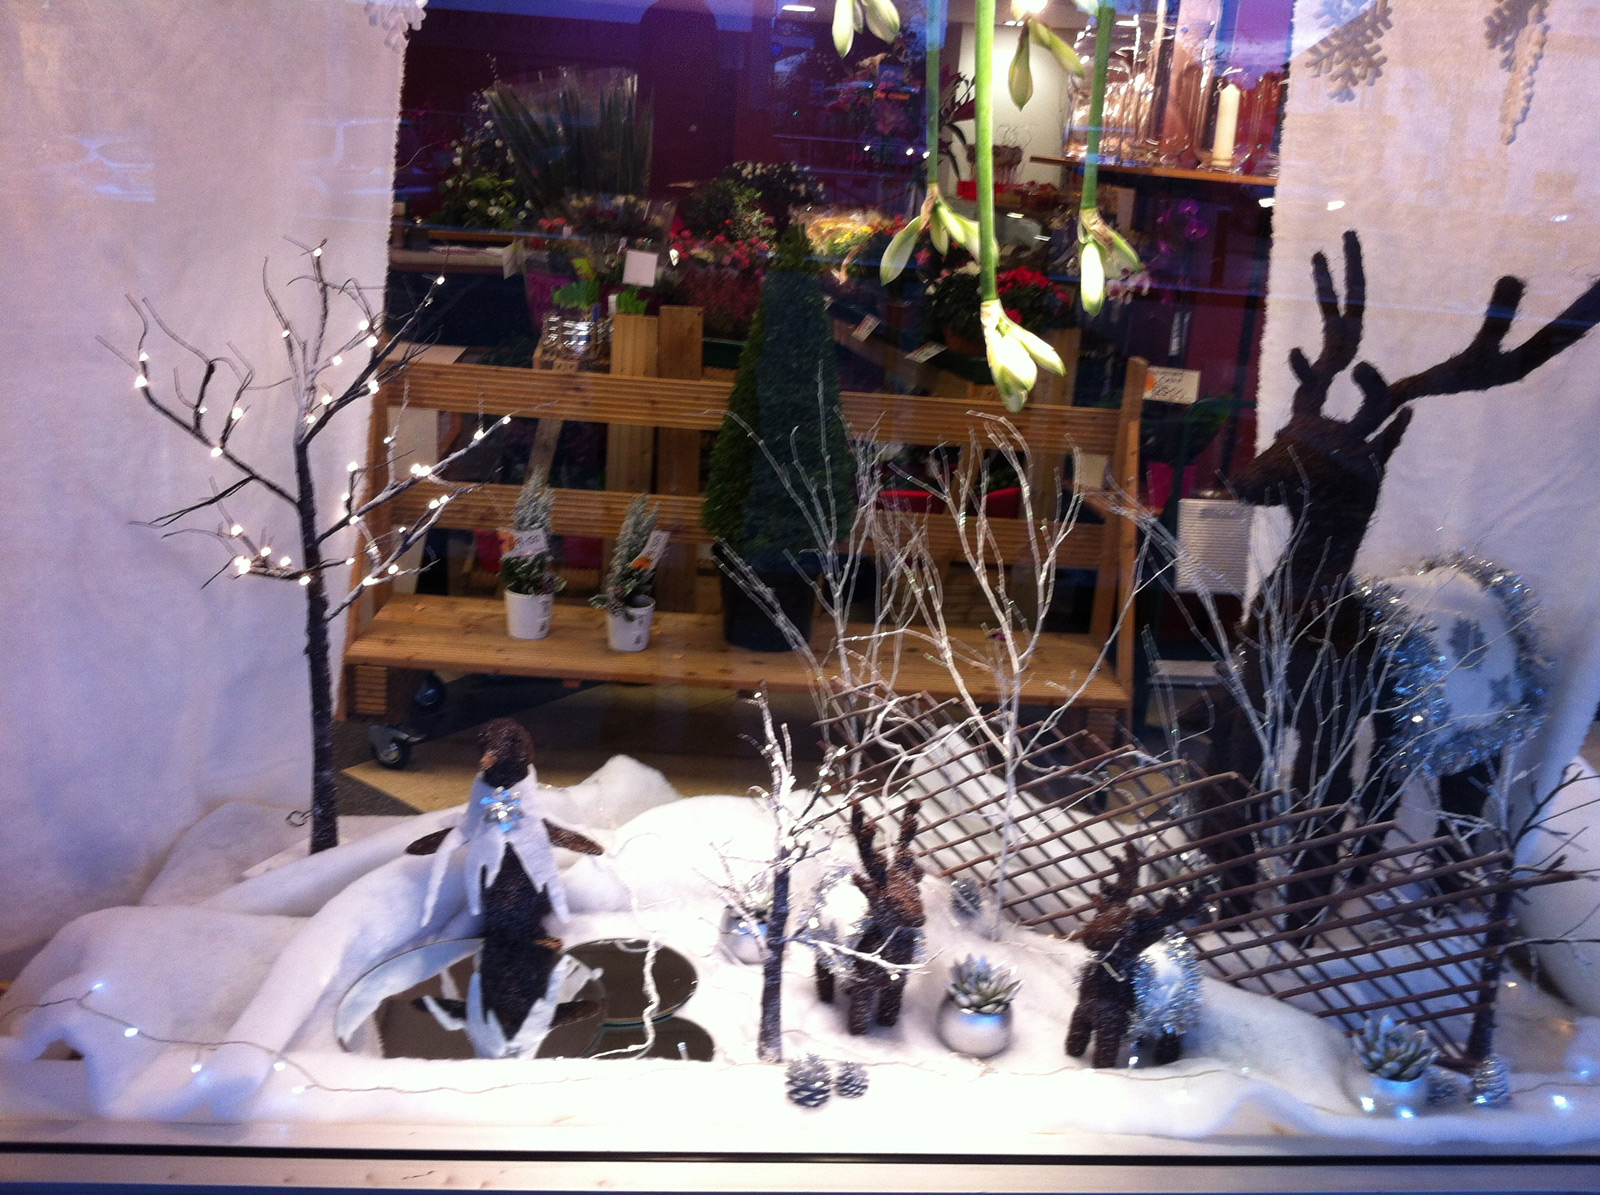 A stunning winter scene in this window display with little reindeer and trees adorned with lights.